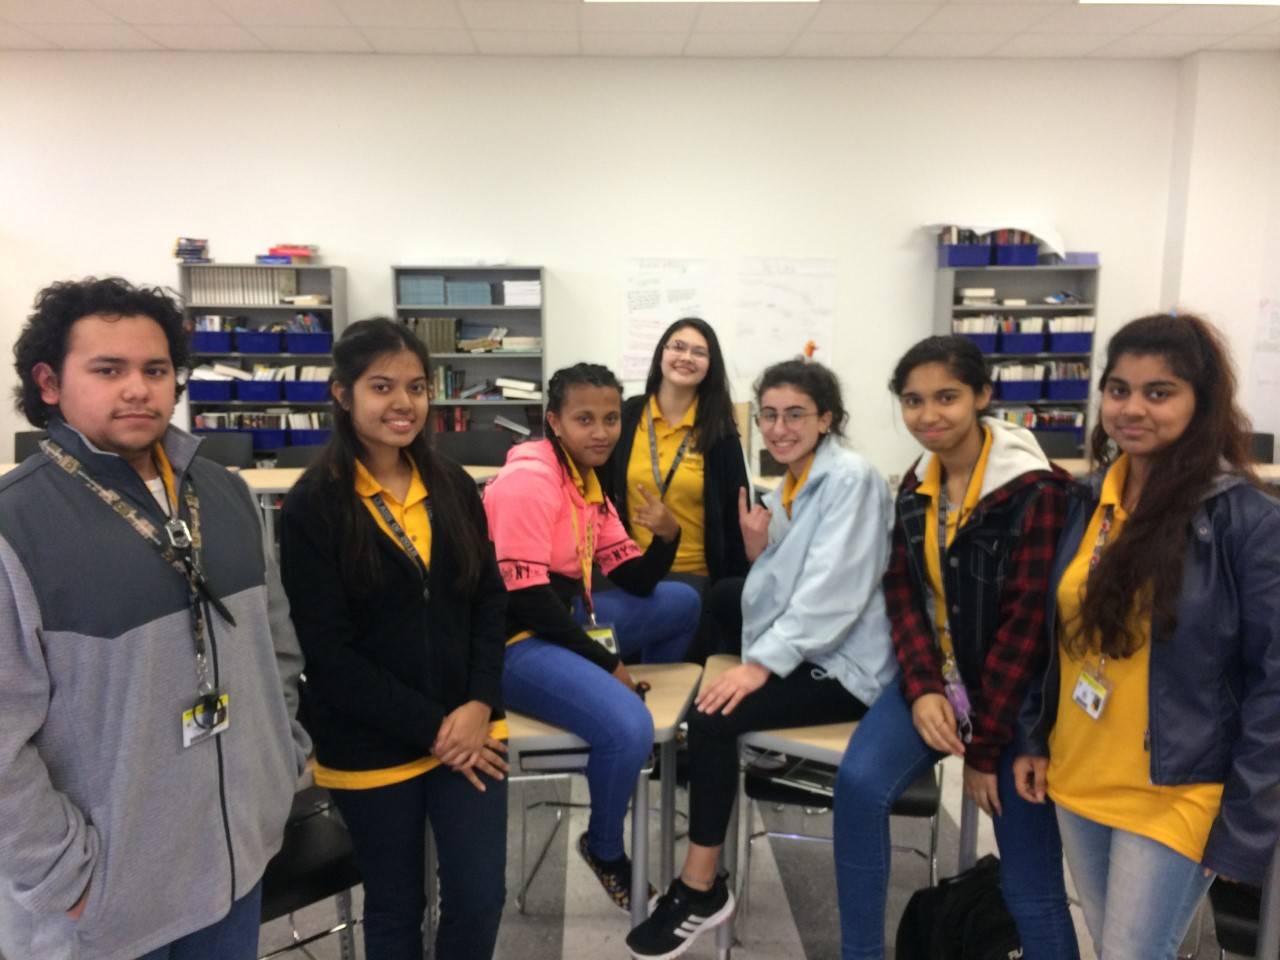 Some members of the Wisdom HS Interact Club, at their meeting on January 10, 2018